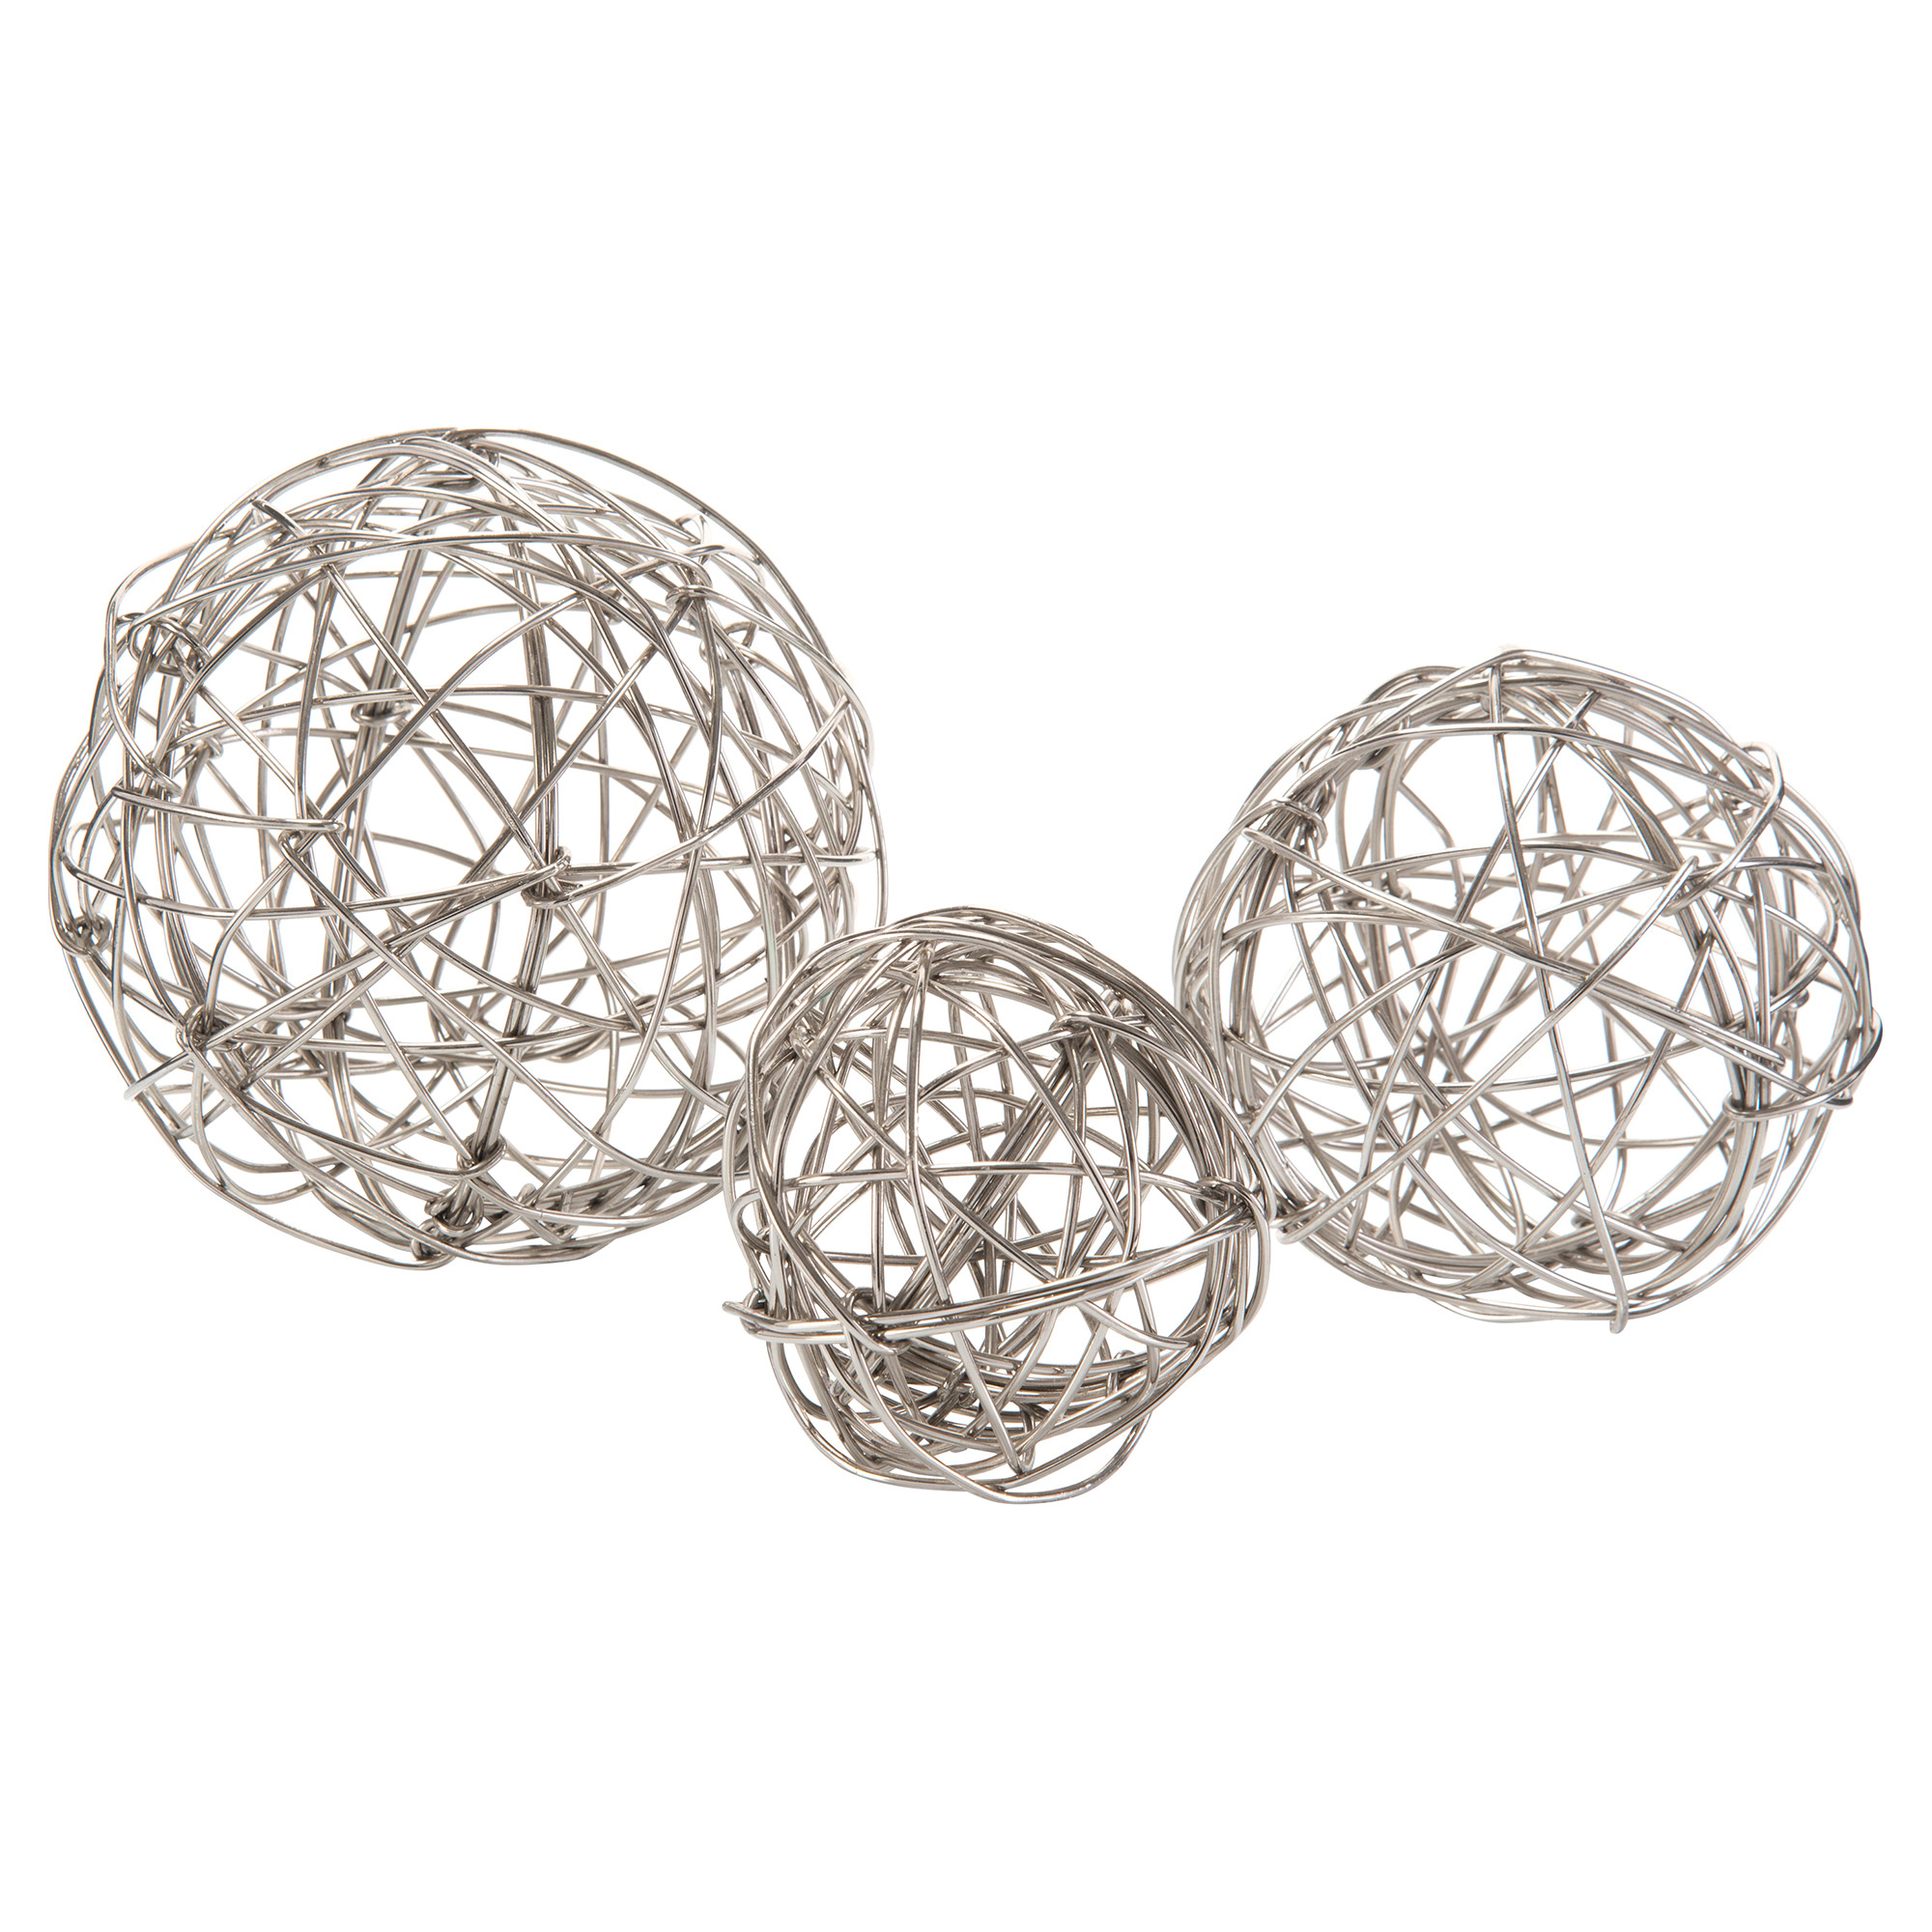 Polished Nickel Wrapped Wire Orbs - Set of 3